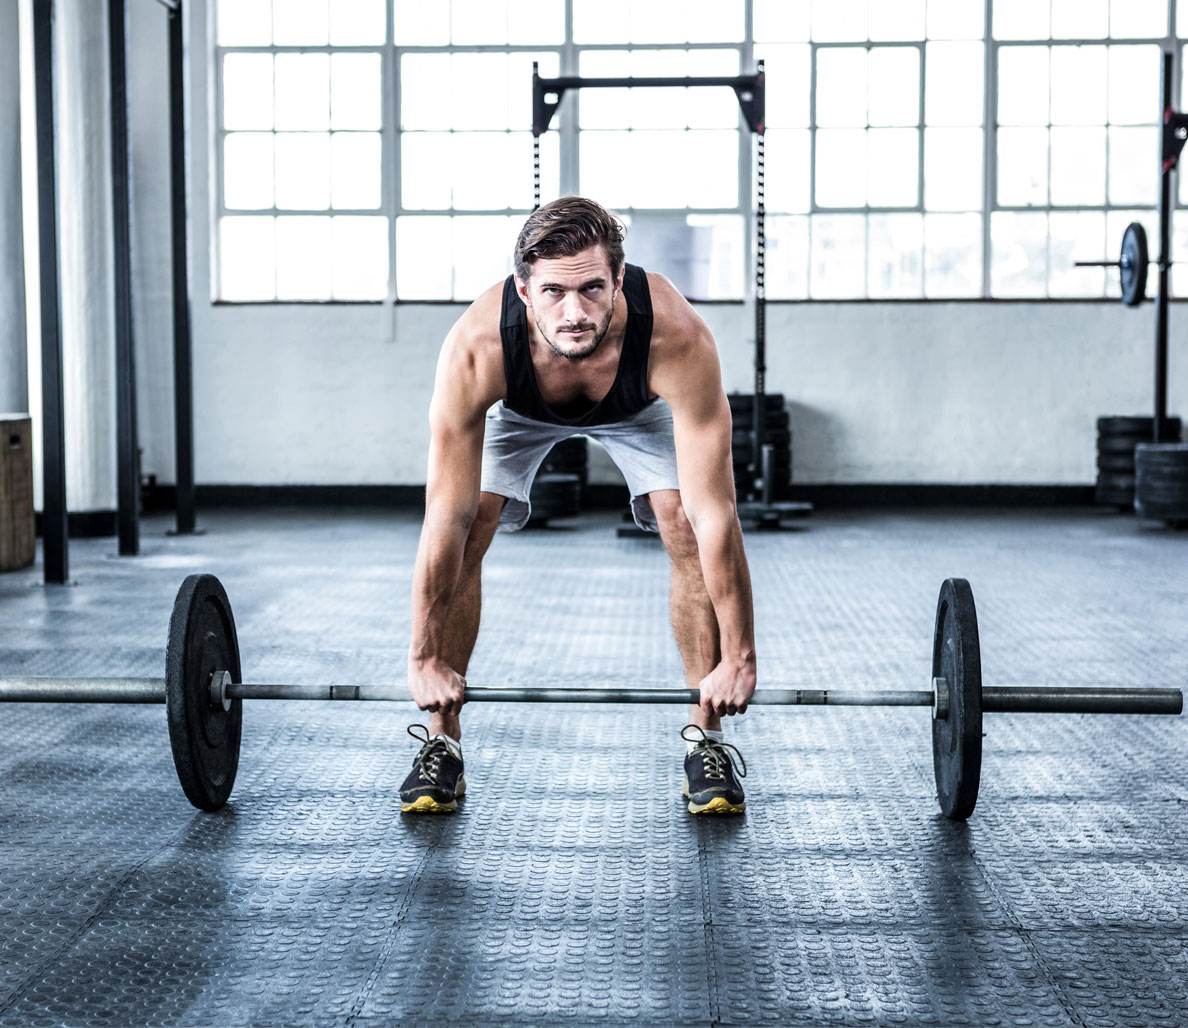 Why It's Hard to Gain Weight: Four Rules to Building Muscle